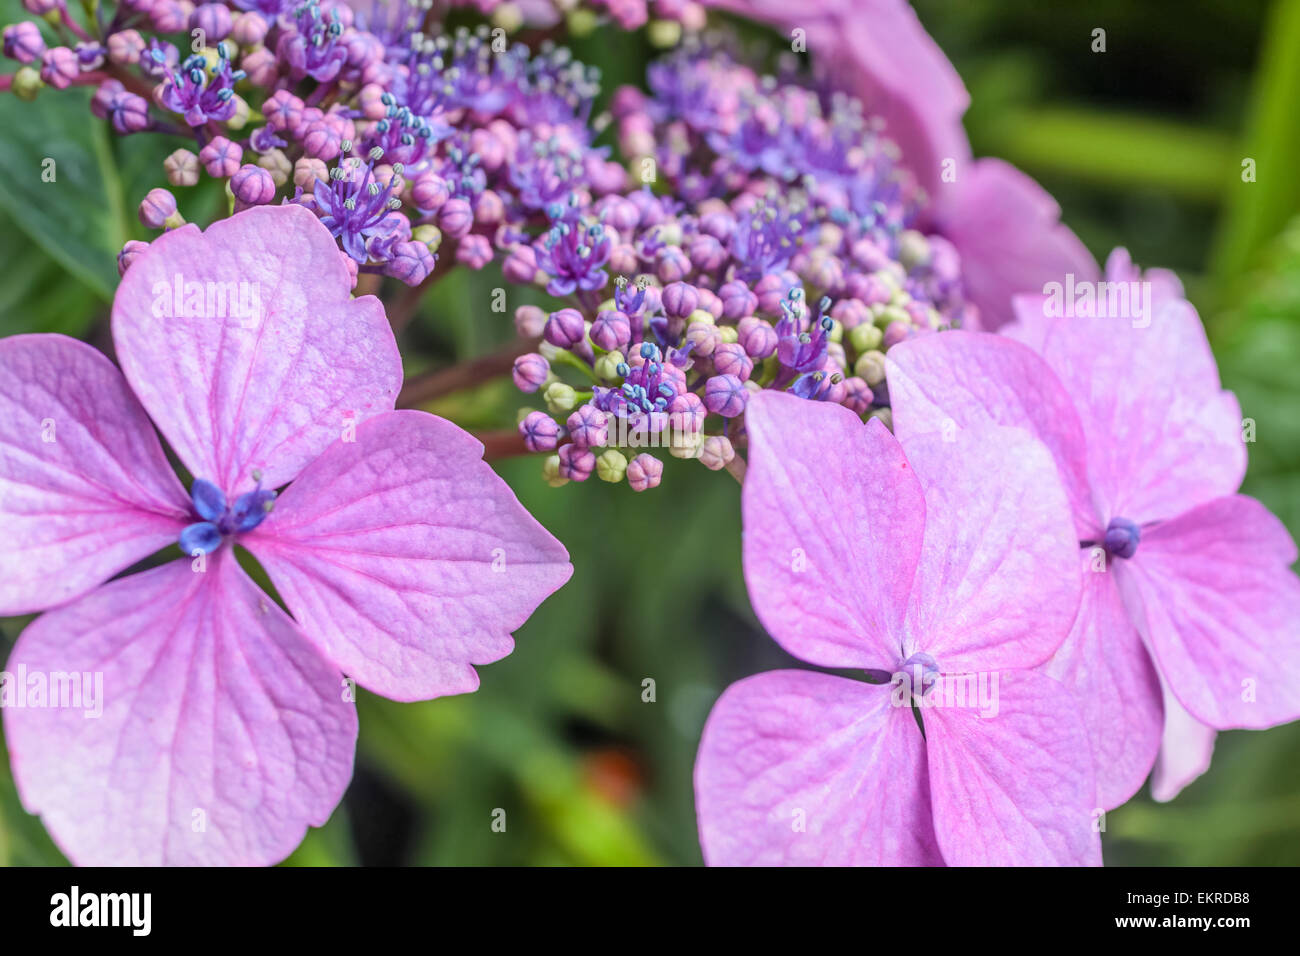 Purple hydrangea blossoms in the rain at Derrynane House, Caherdaniel, Killarney, County Kerry, Ireland - Stock Image